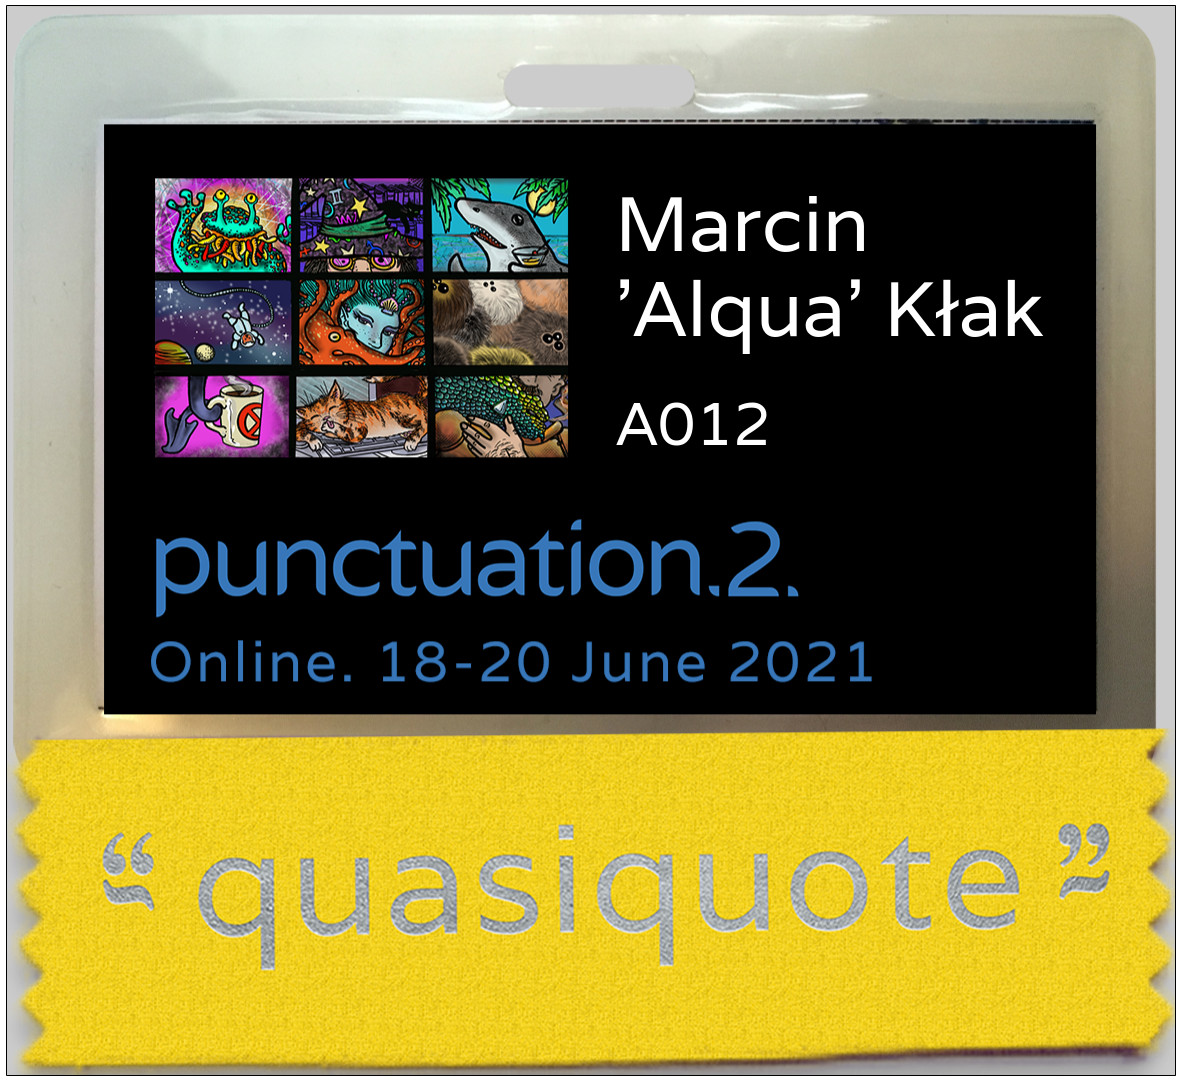 Convention badge with one ribbon. Badge is black with a set of nine small pictures on the top left corner. To the right there is a name of the member and below inscription 'punctuation.2. Online. 18-20 June 2021'. At the bottom there is a yellow ribbon stating 'quasiquote'.